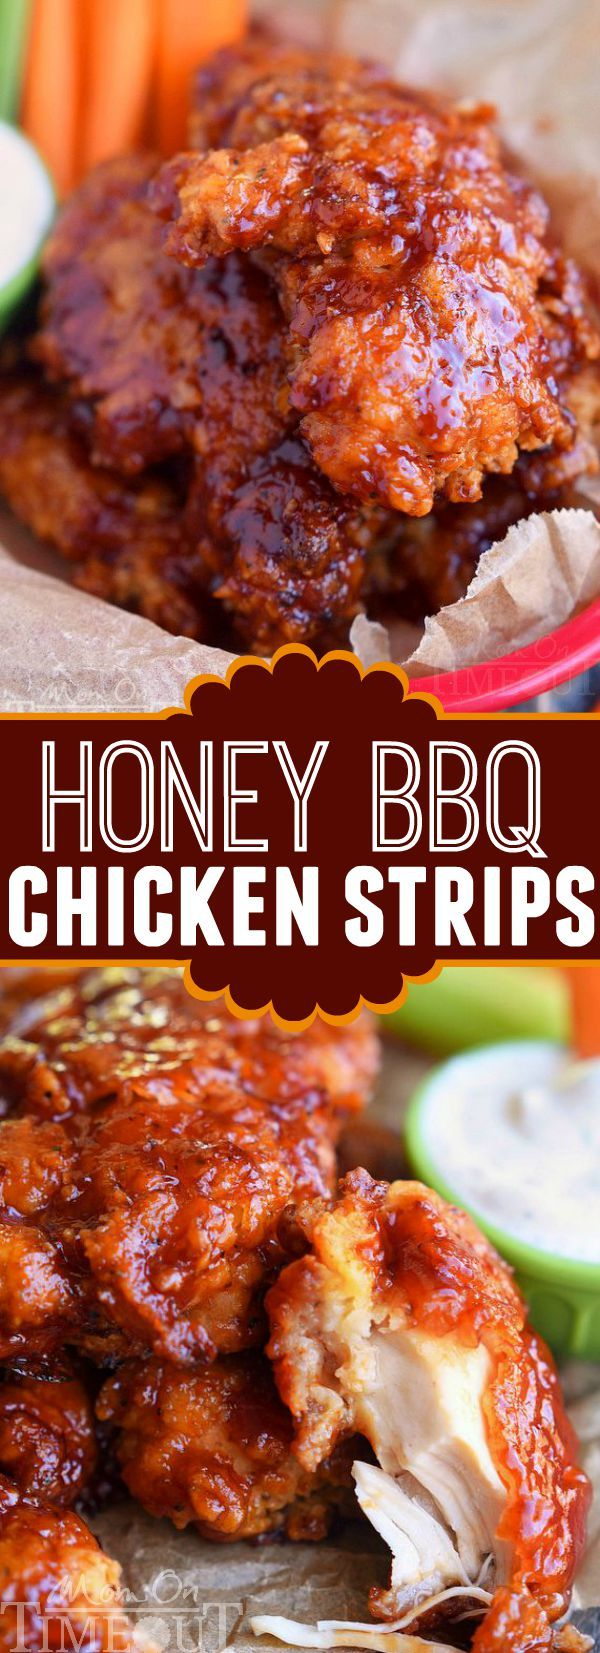 Honey BBQ Chicken Strips – Perfect for dinner or game day! Marinated in buttermilk and perfectly seasoned, these strips are hard